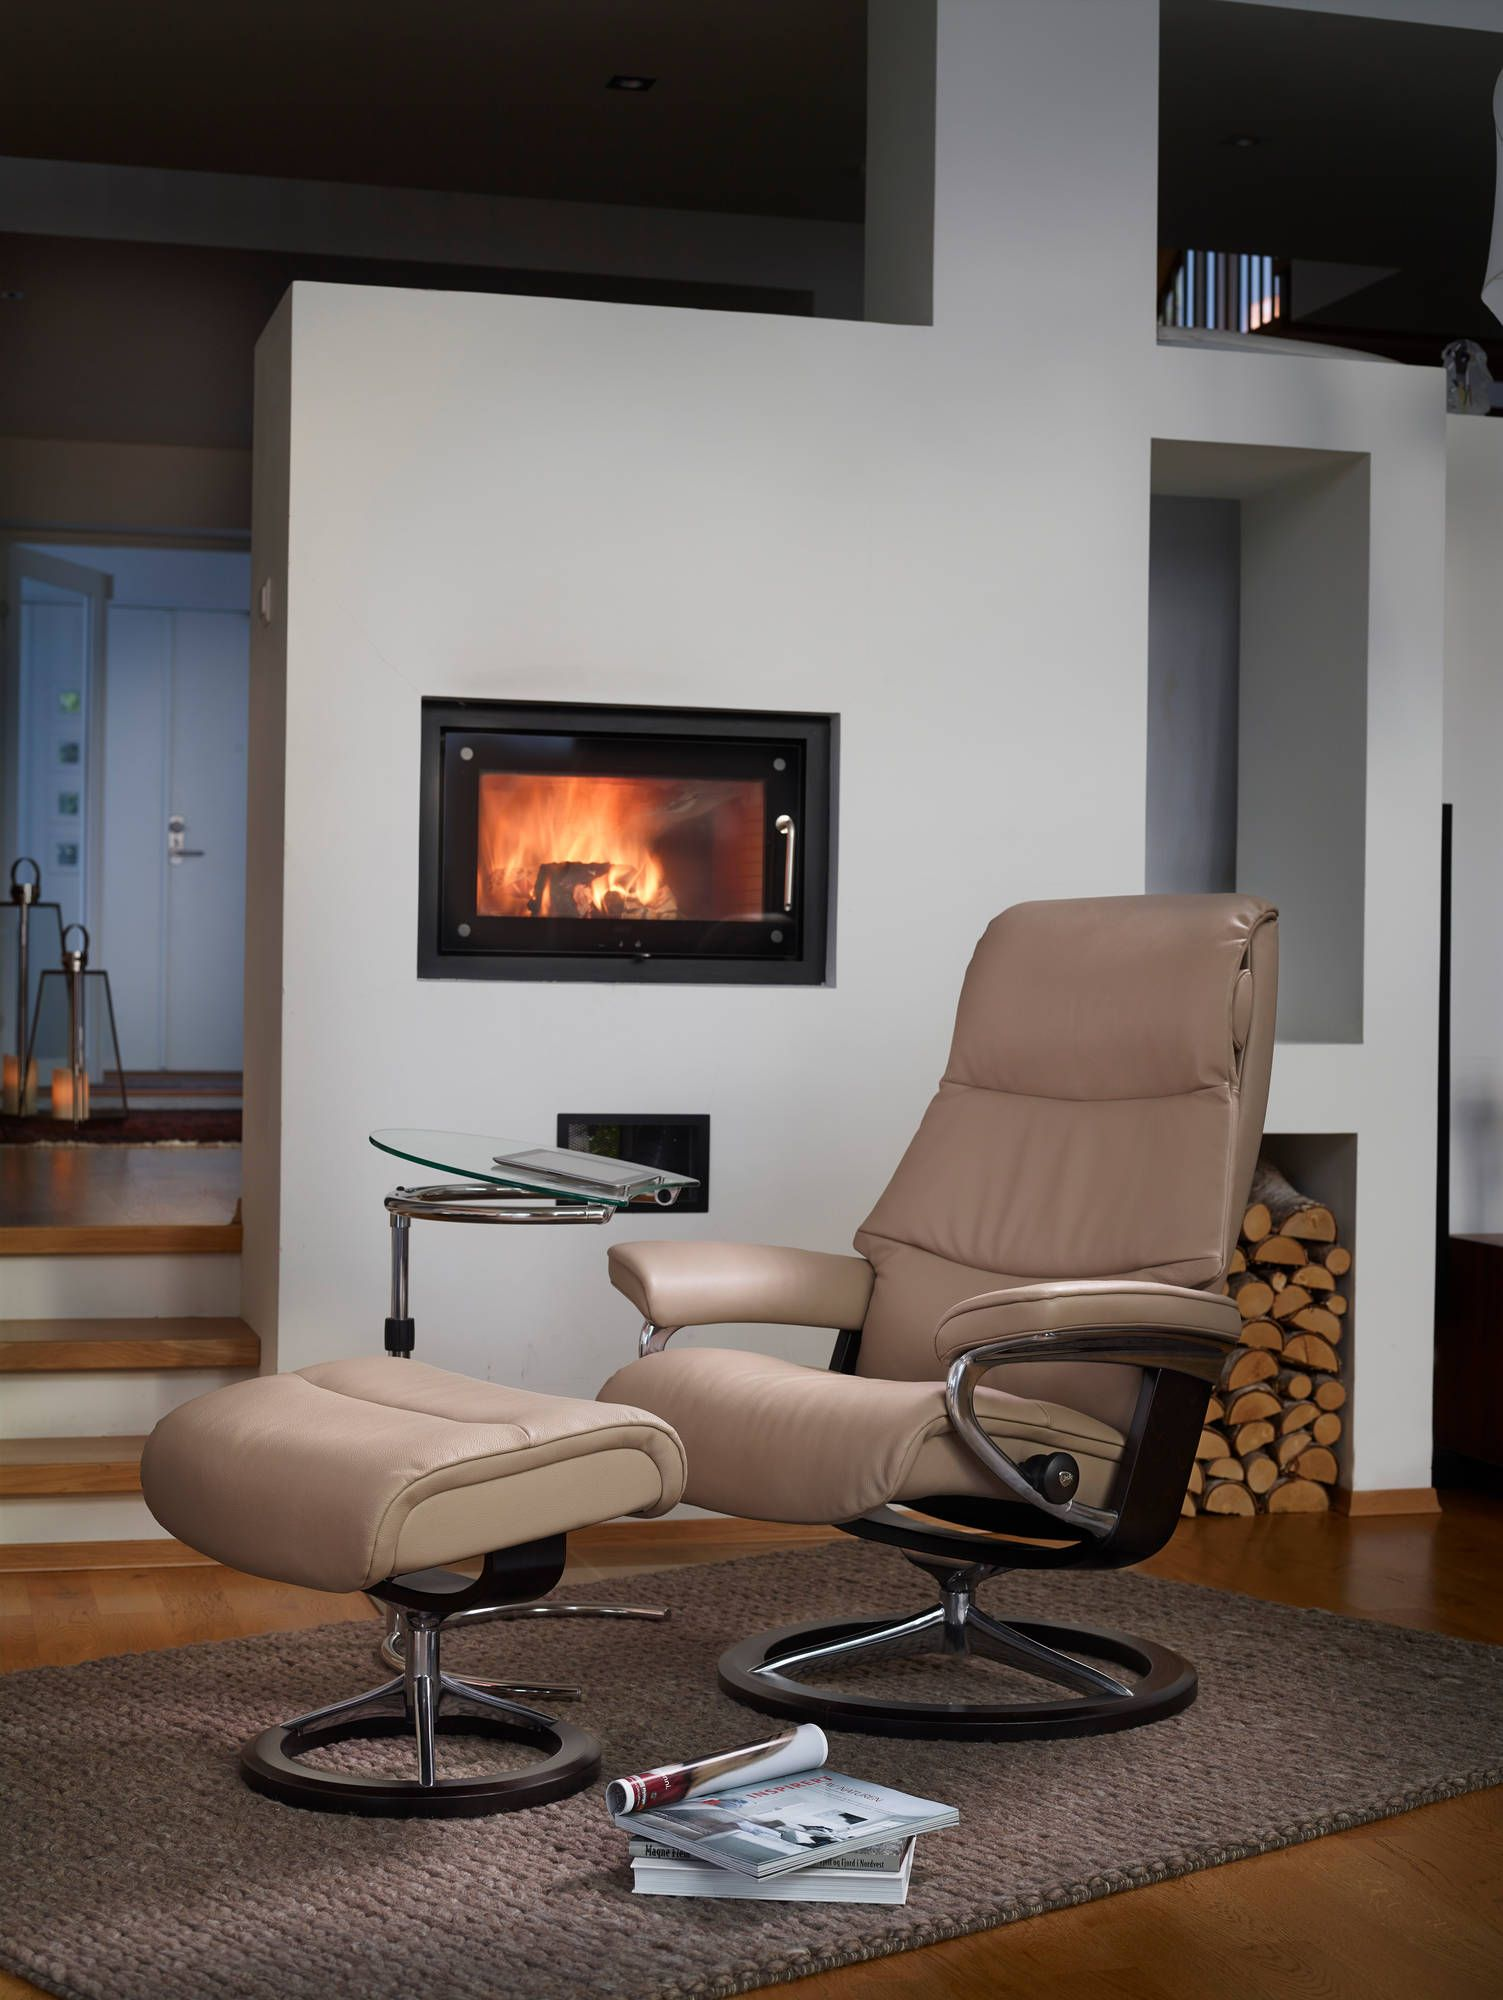 Stressless consul small chair and stool in batick leather - Stressless View Recliner In Cori Leather Color Beige With Signature Base Wood